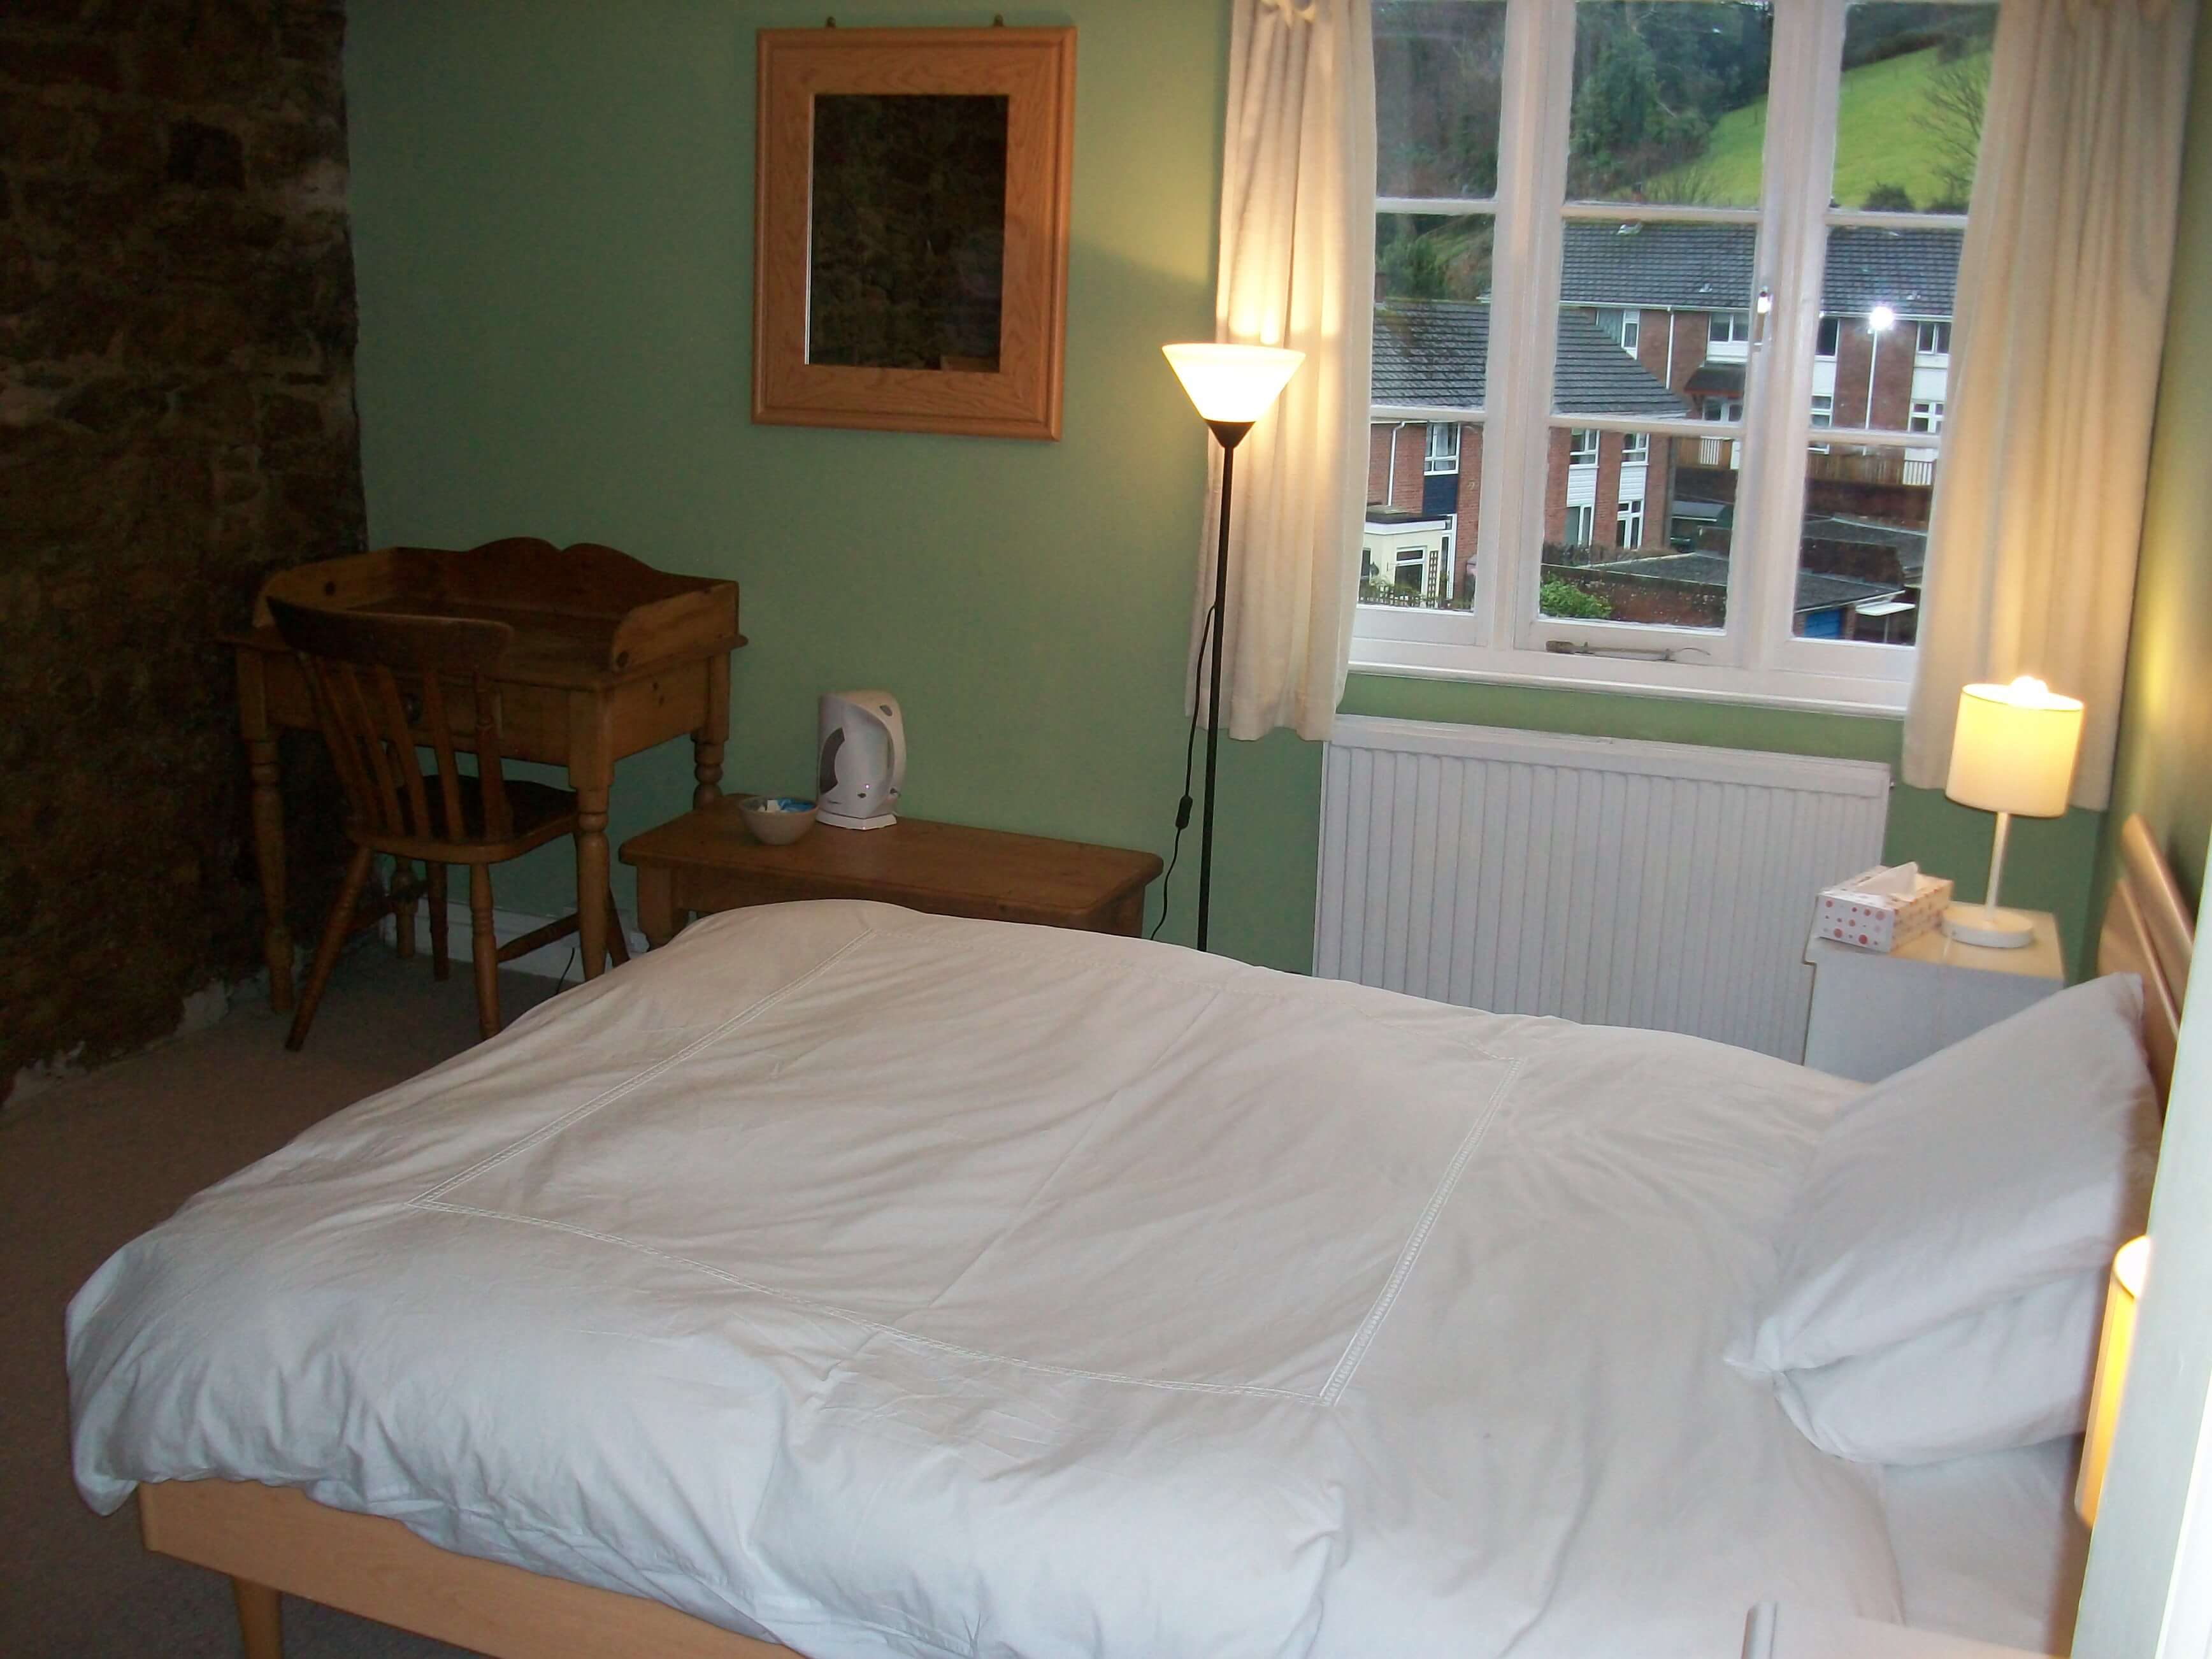 No 44 Bed and Breakfast - Image 2 - UK Tourism Online